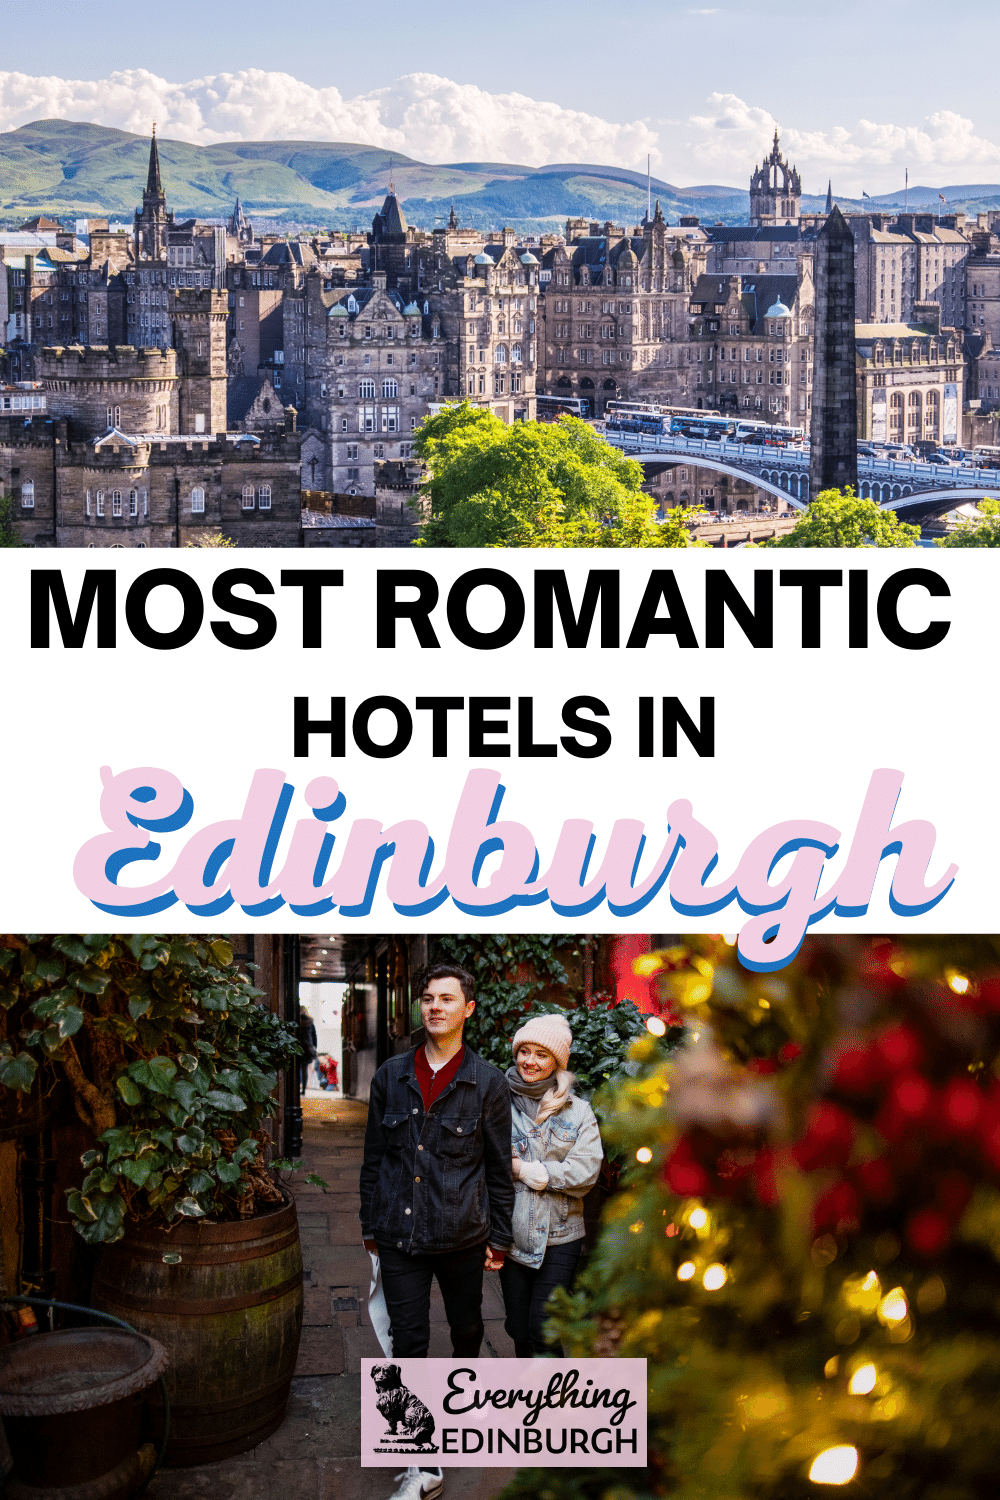 Looking for the best hotels in Edinburgh? We're rounded up the most romantic including popular historic gems, boutique hotels for couples and converted Georgian houses. Click to find out the most romantic hotels in Scotland's capital.